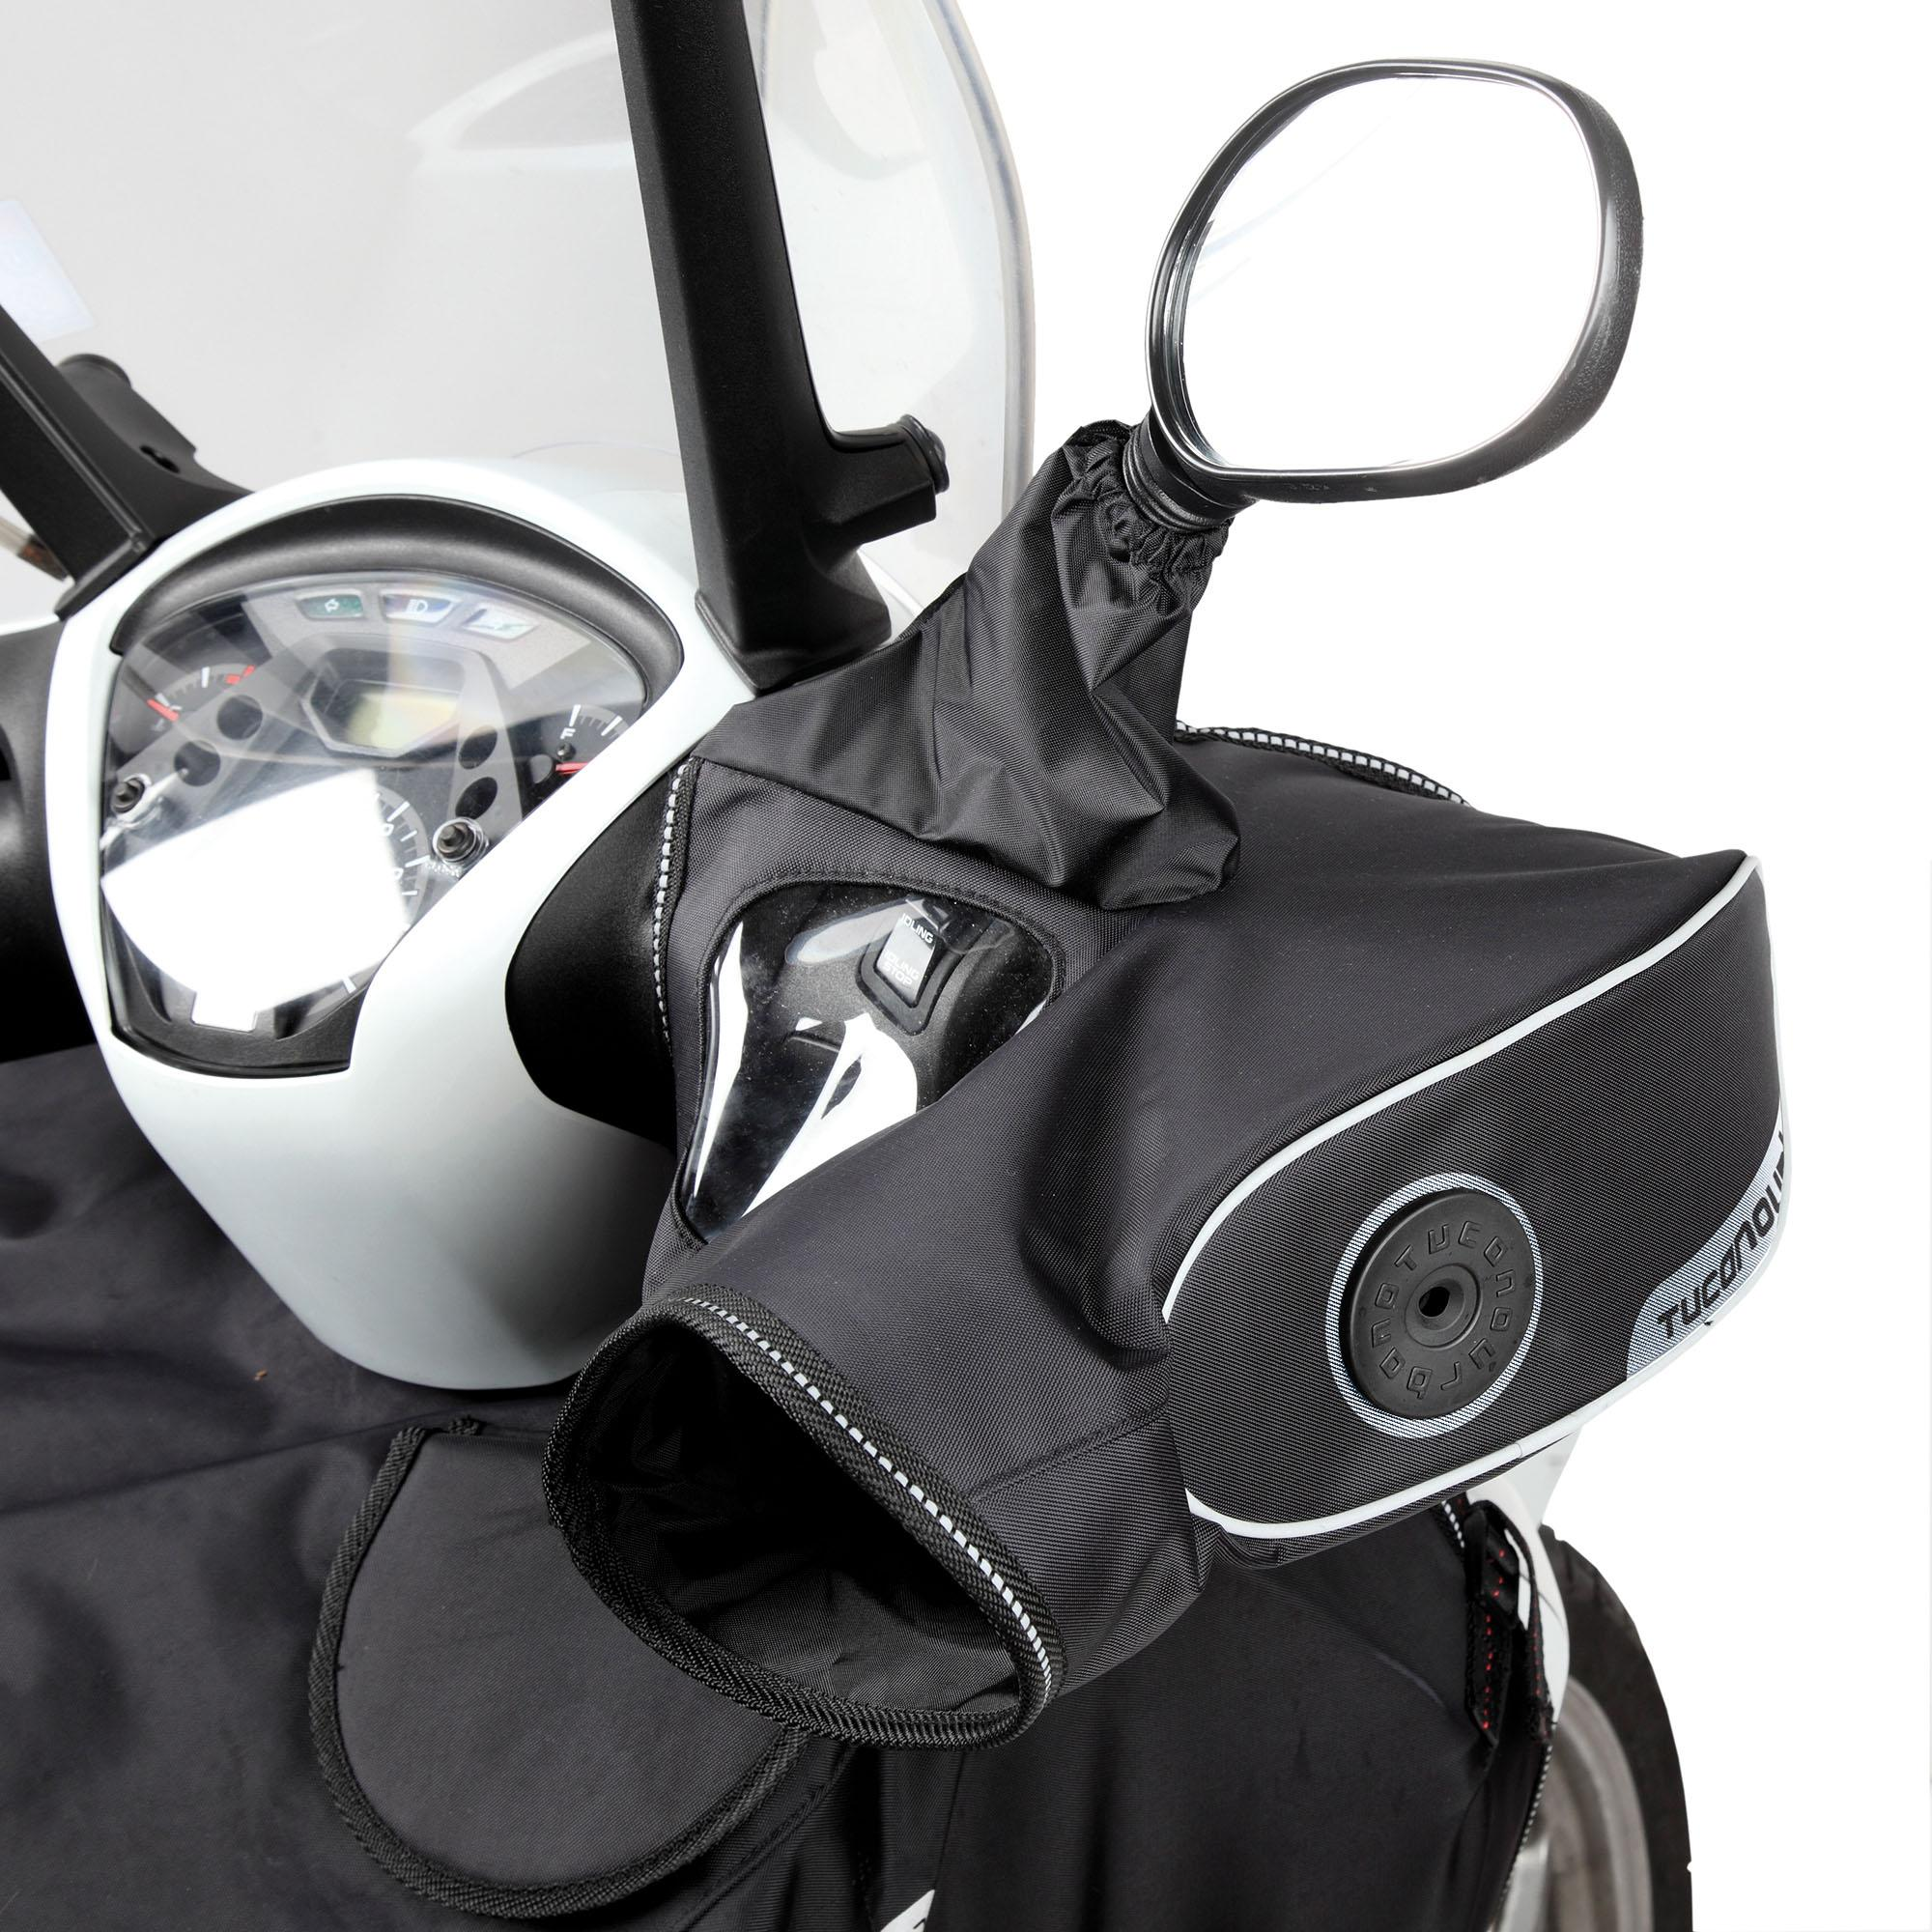 Polyamide Hand Grip Covers Sp For Handlebars With Mirrors Black